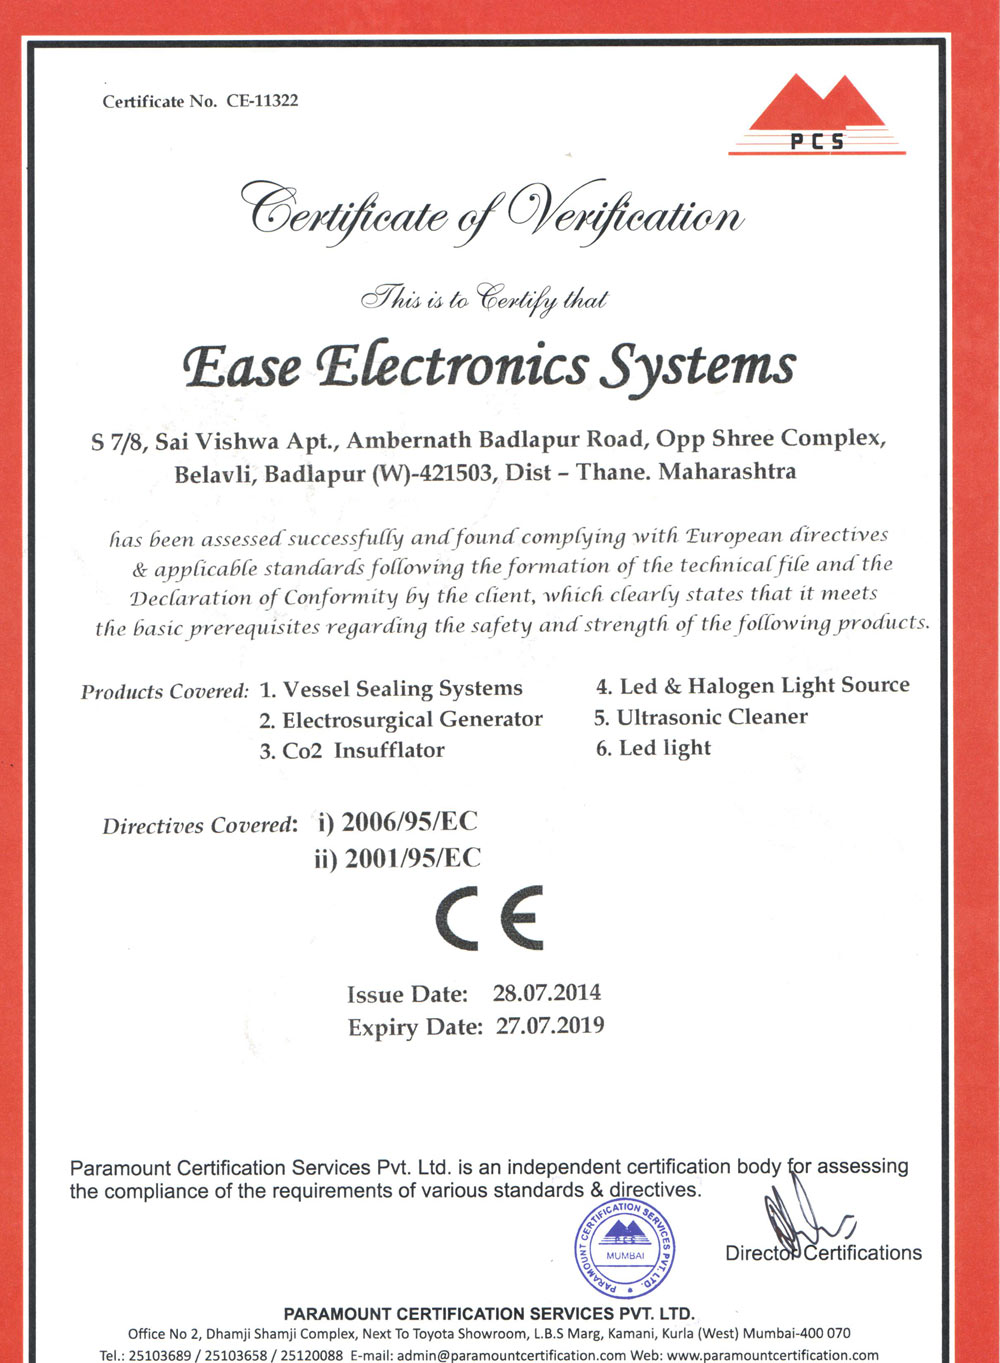 Quality certificates ease electronics systems thane india ease electronics systems certificate xflitez Choice Image